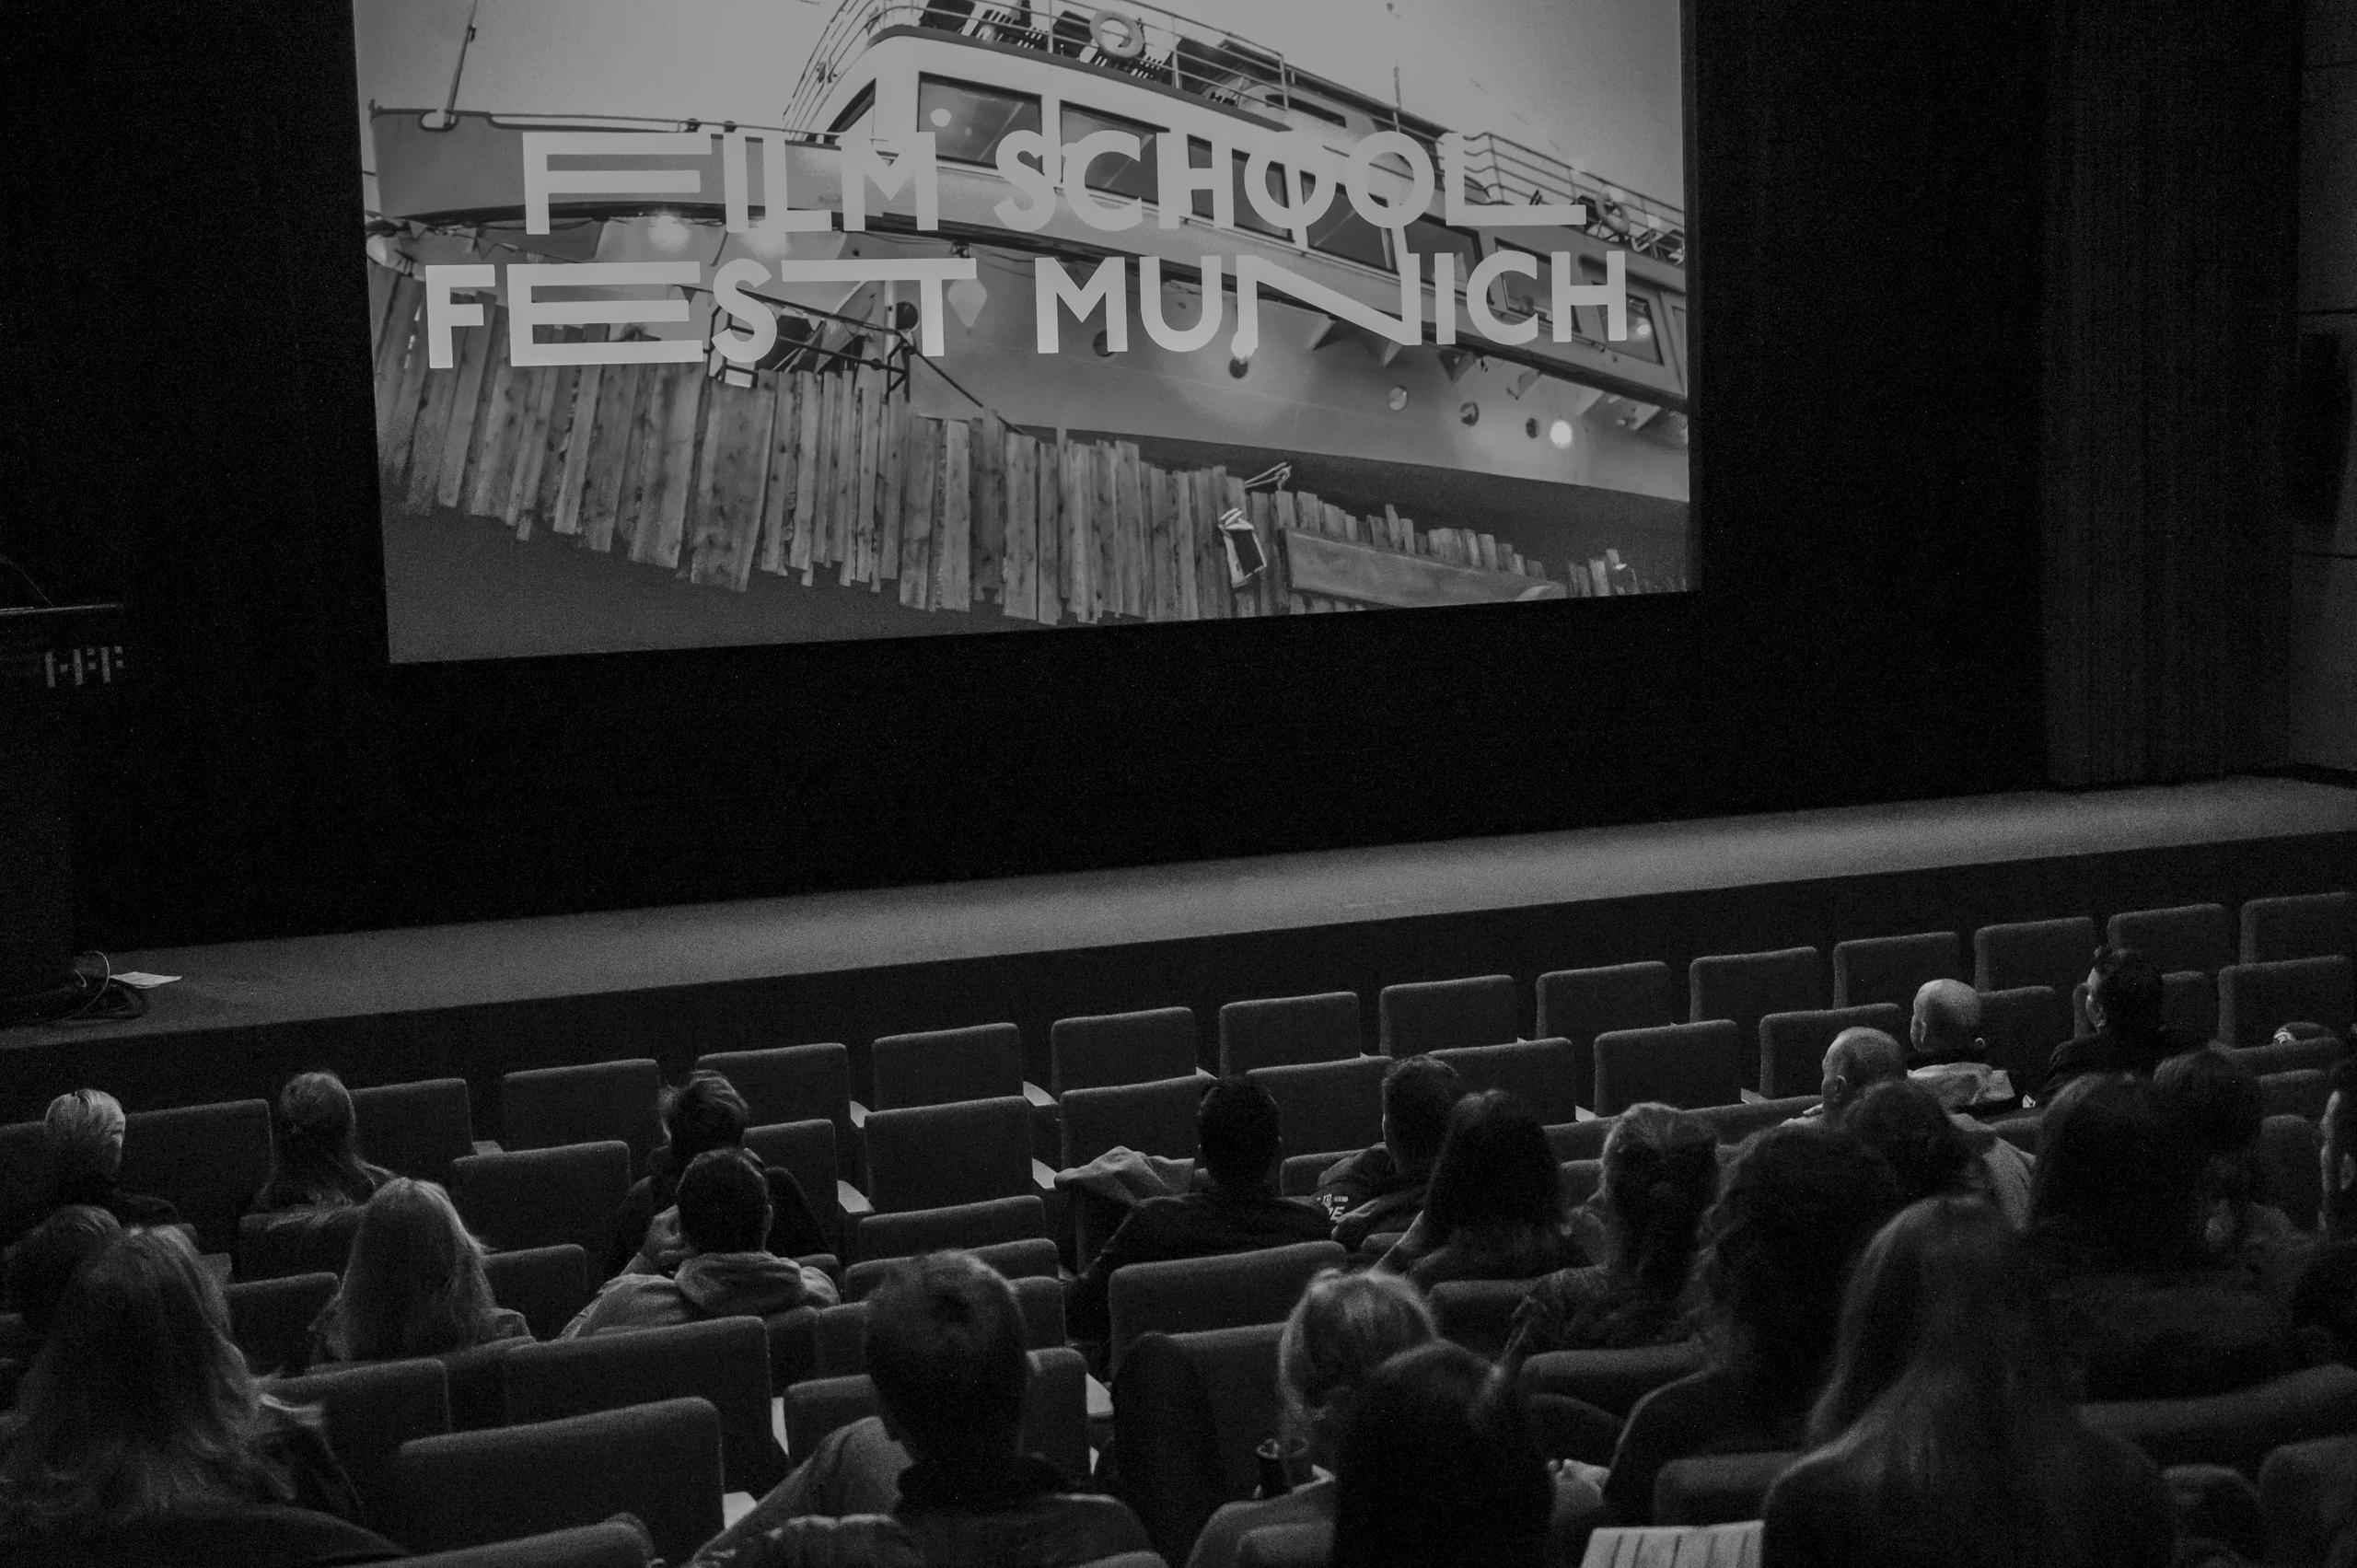 39. Film School Fest Munich